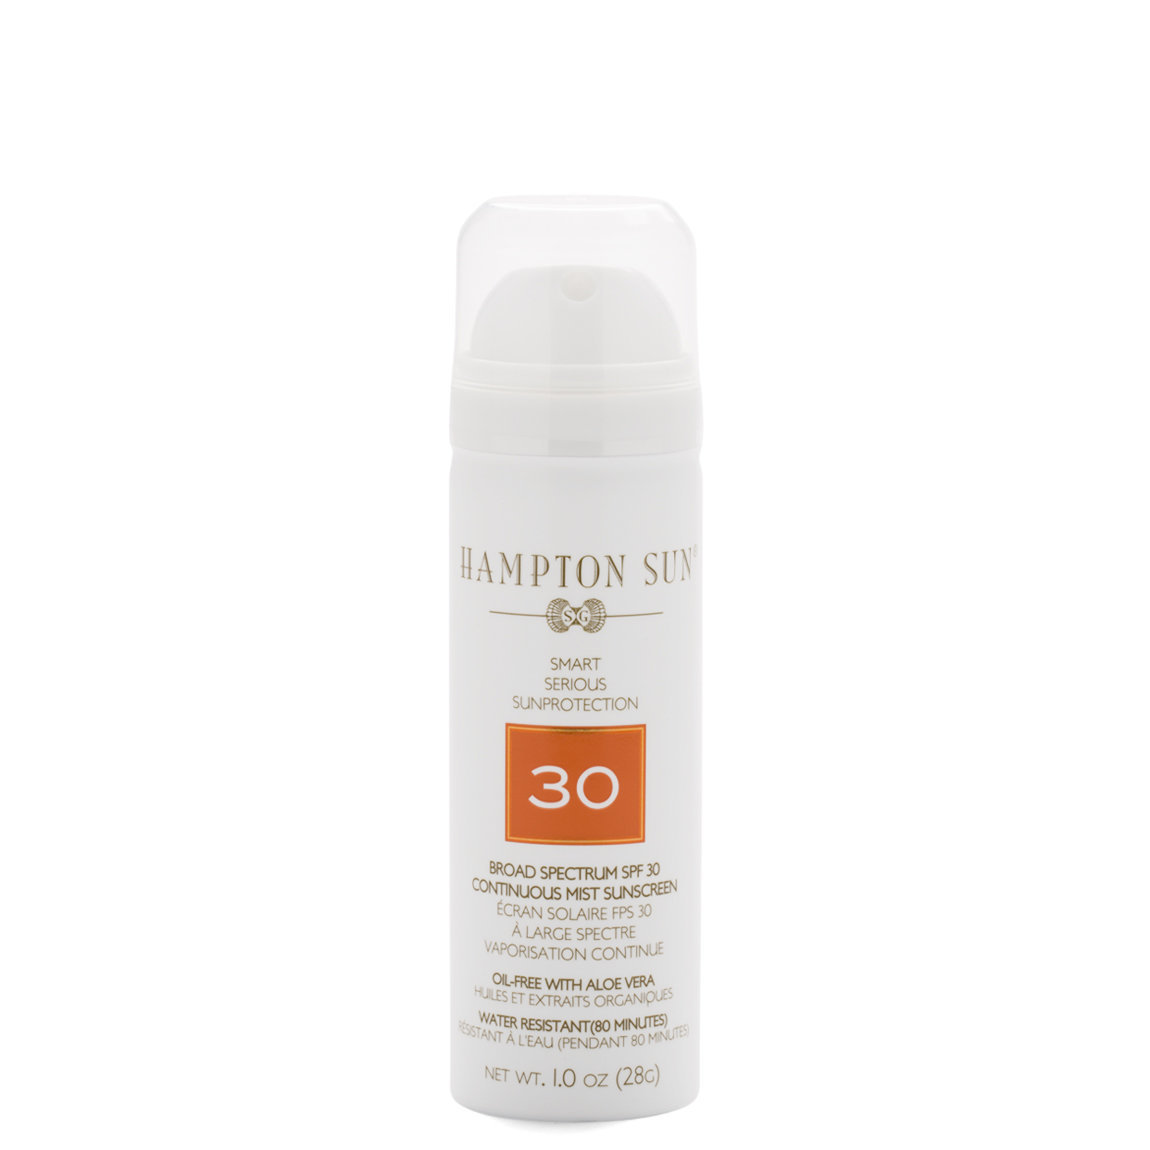 Hampton Sun SPF 30 Continuous Mist Sunscreen 1 oz (Travel) product swatch.